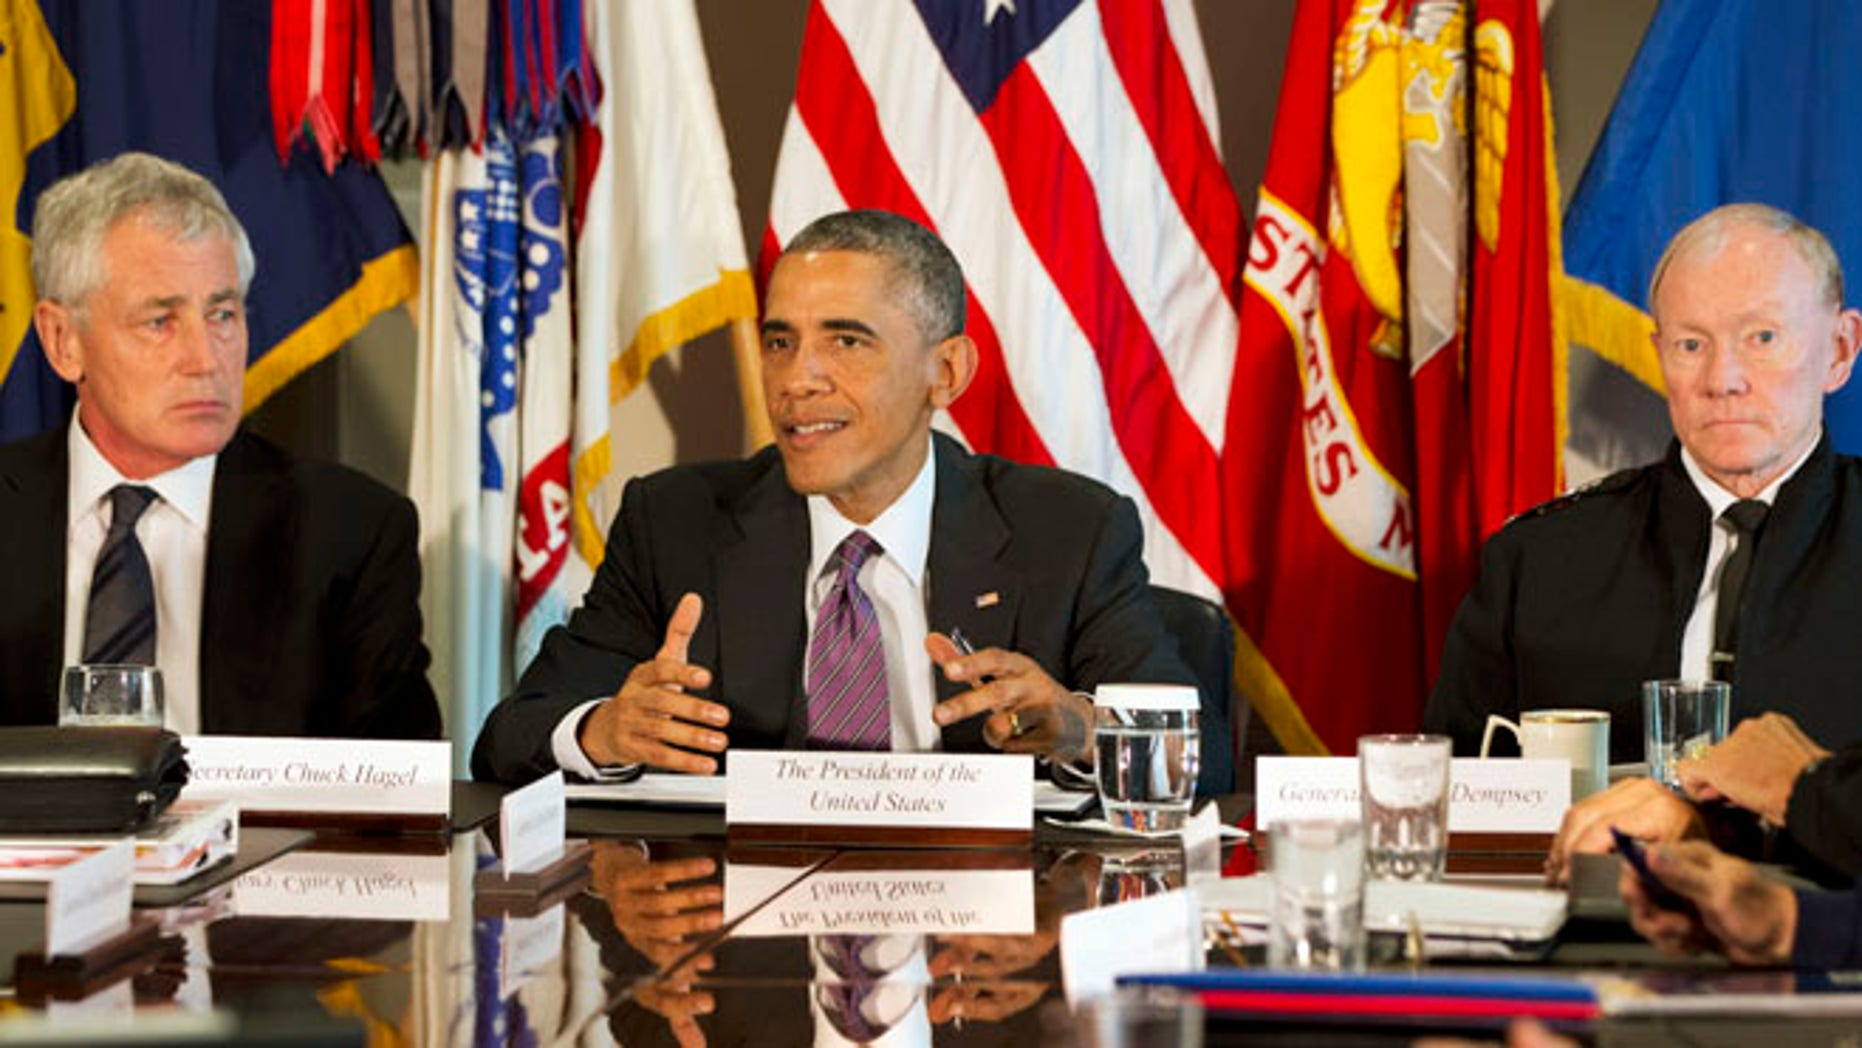 Oct. 8, 2014: President Barack Obama, flanked by Defense Secretary Chuck Hagel, left, and Joint Chiefs Chairman Gen. Martin Dempsey, speaks to the media at the conclusion of a meeting with senior military leadership